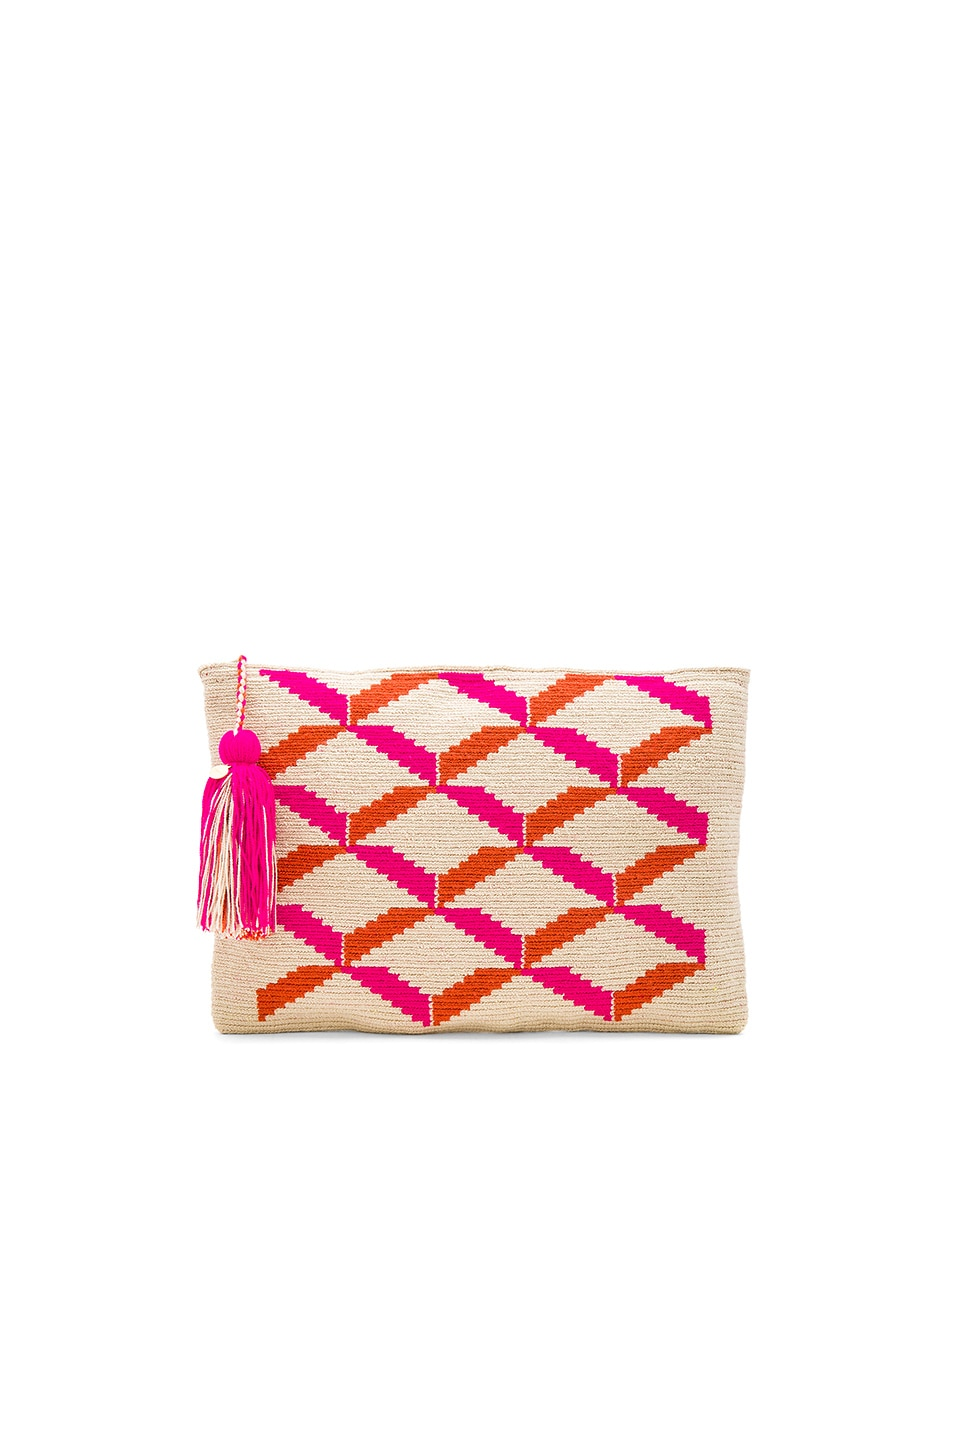 Clutch by Guanabana